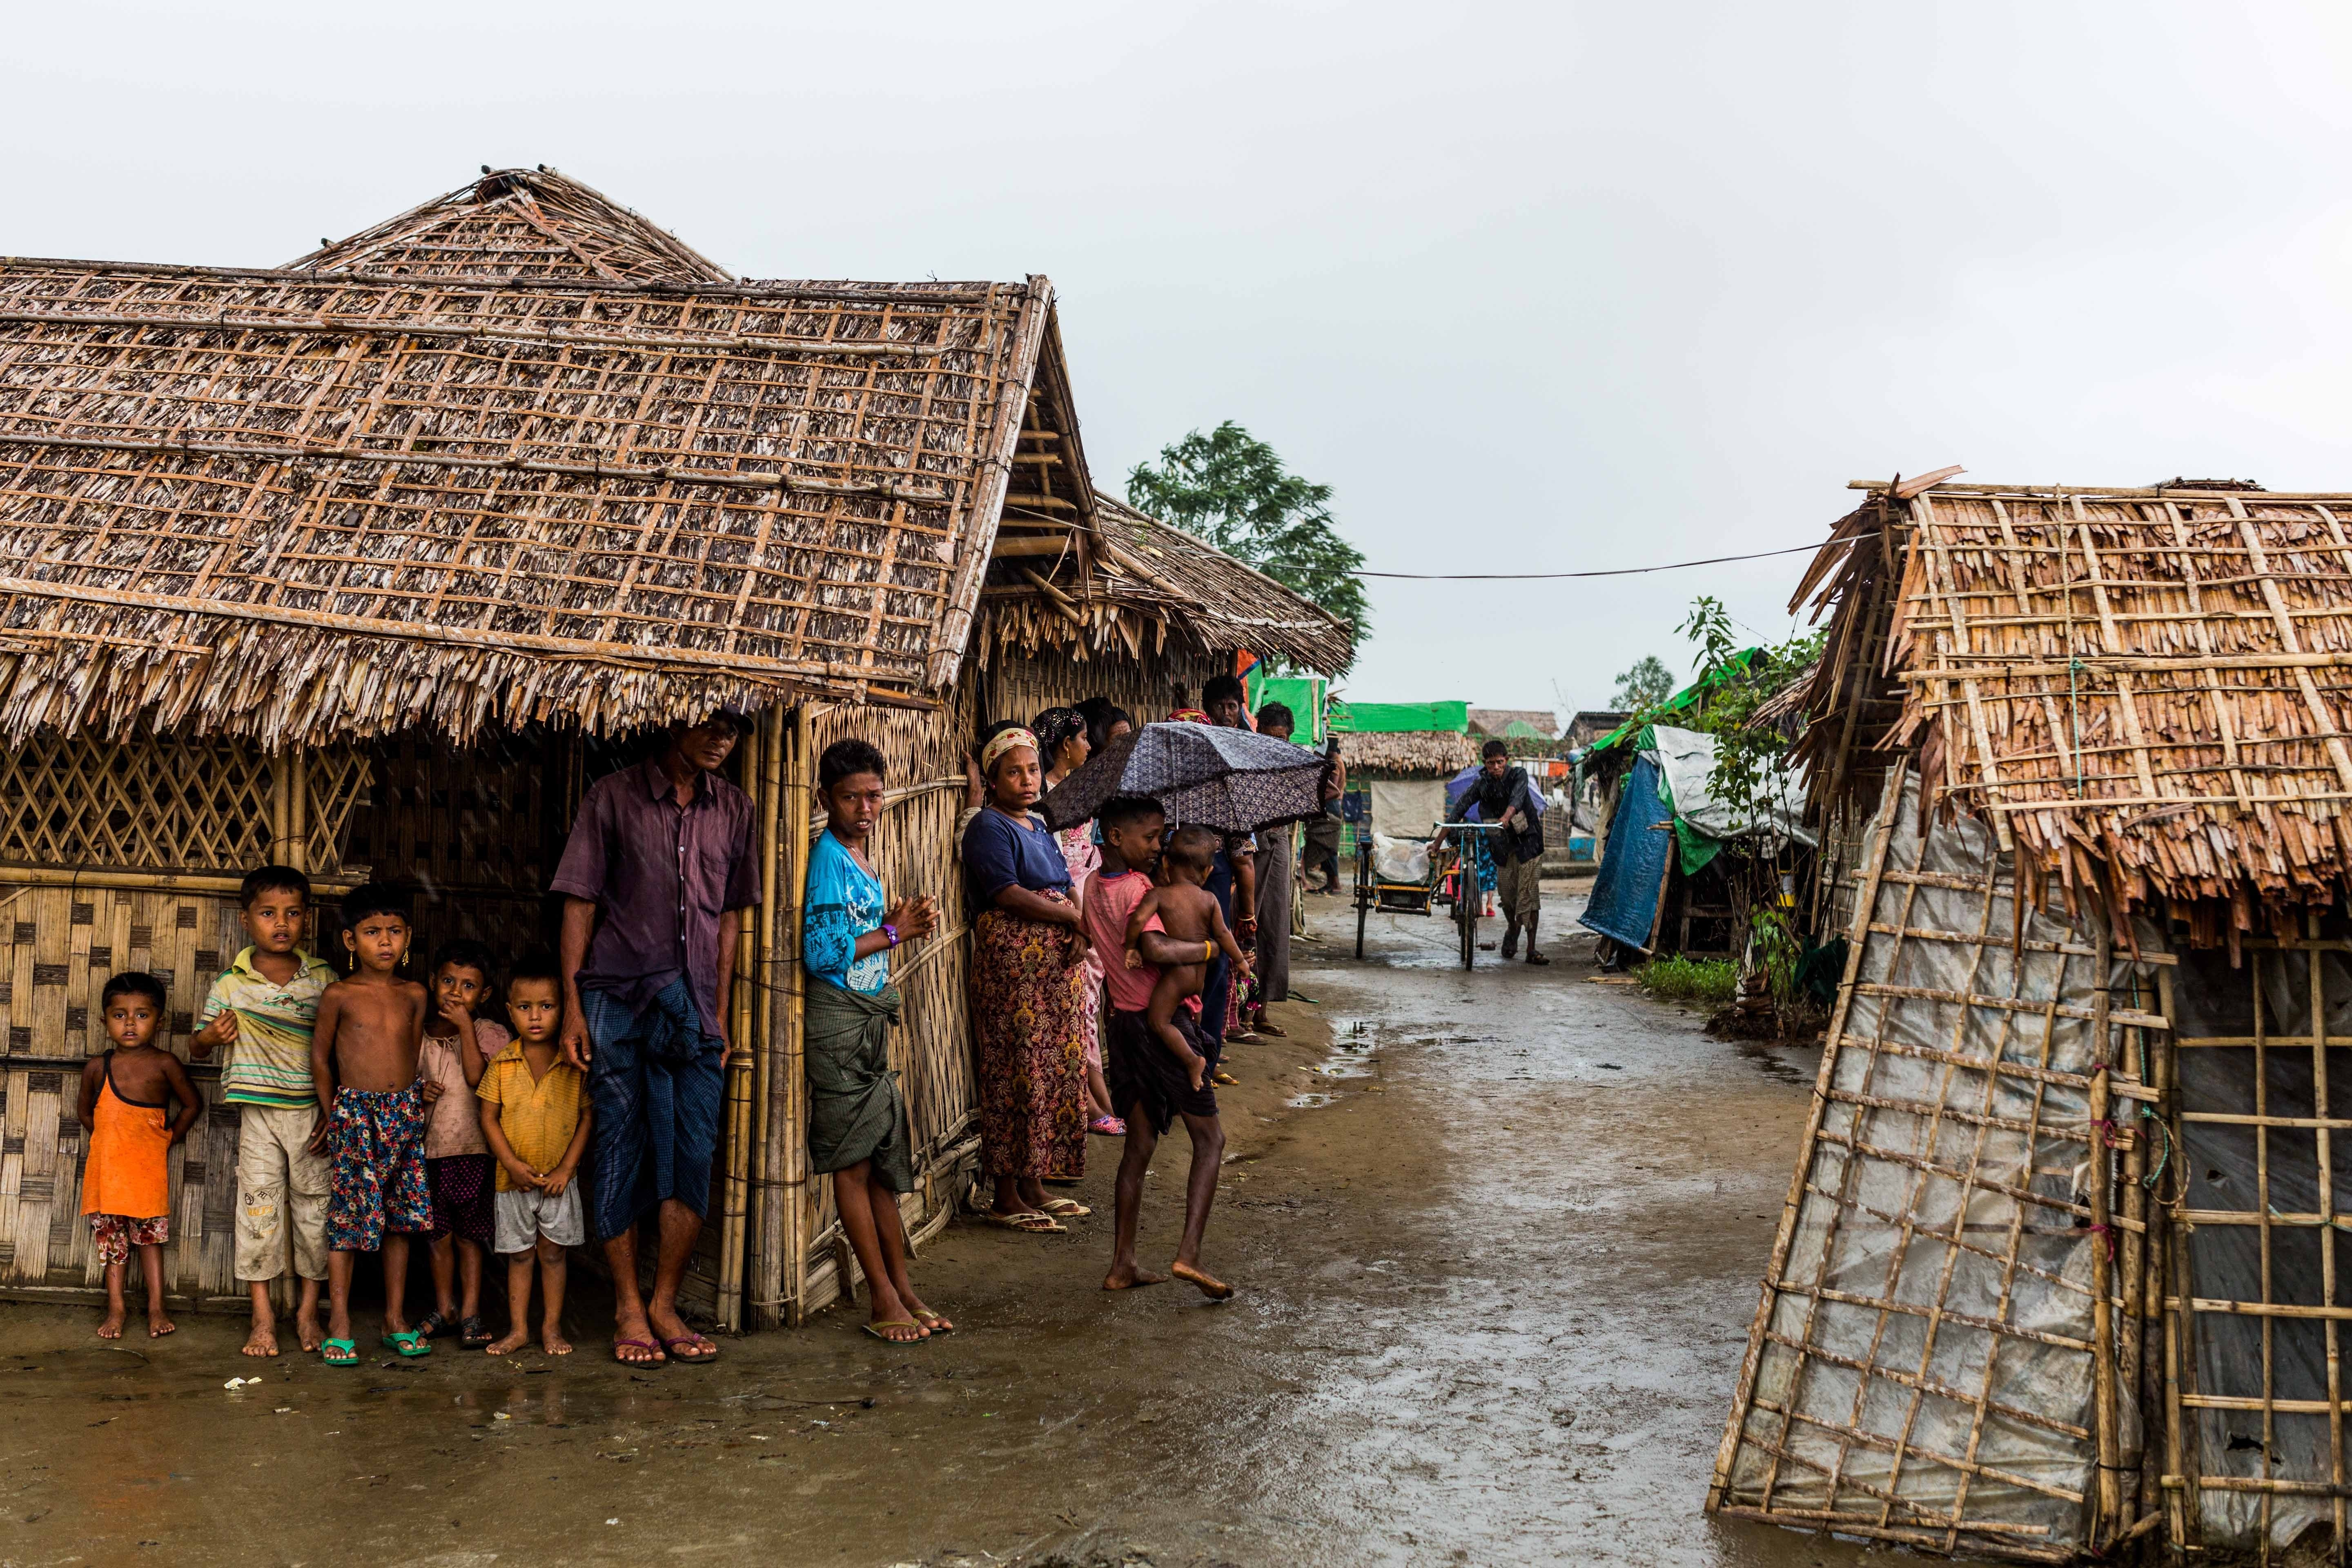 Rohingya refugees seek shelter from the monsoon rains inside a camp for internally displaced persons outside Sittwe, in Burma's Rakhine state, on July 17, 2015